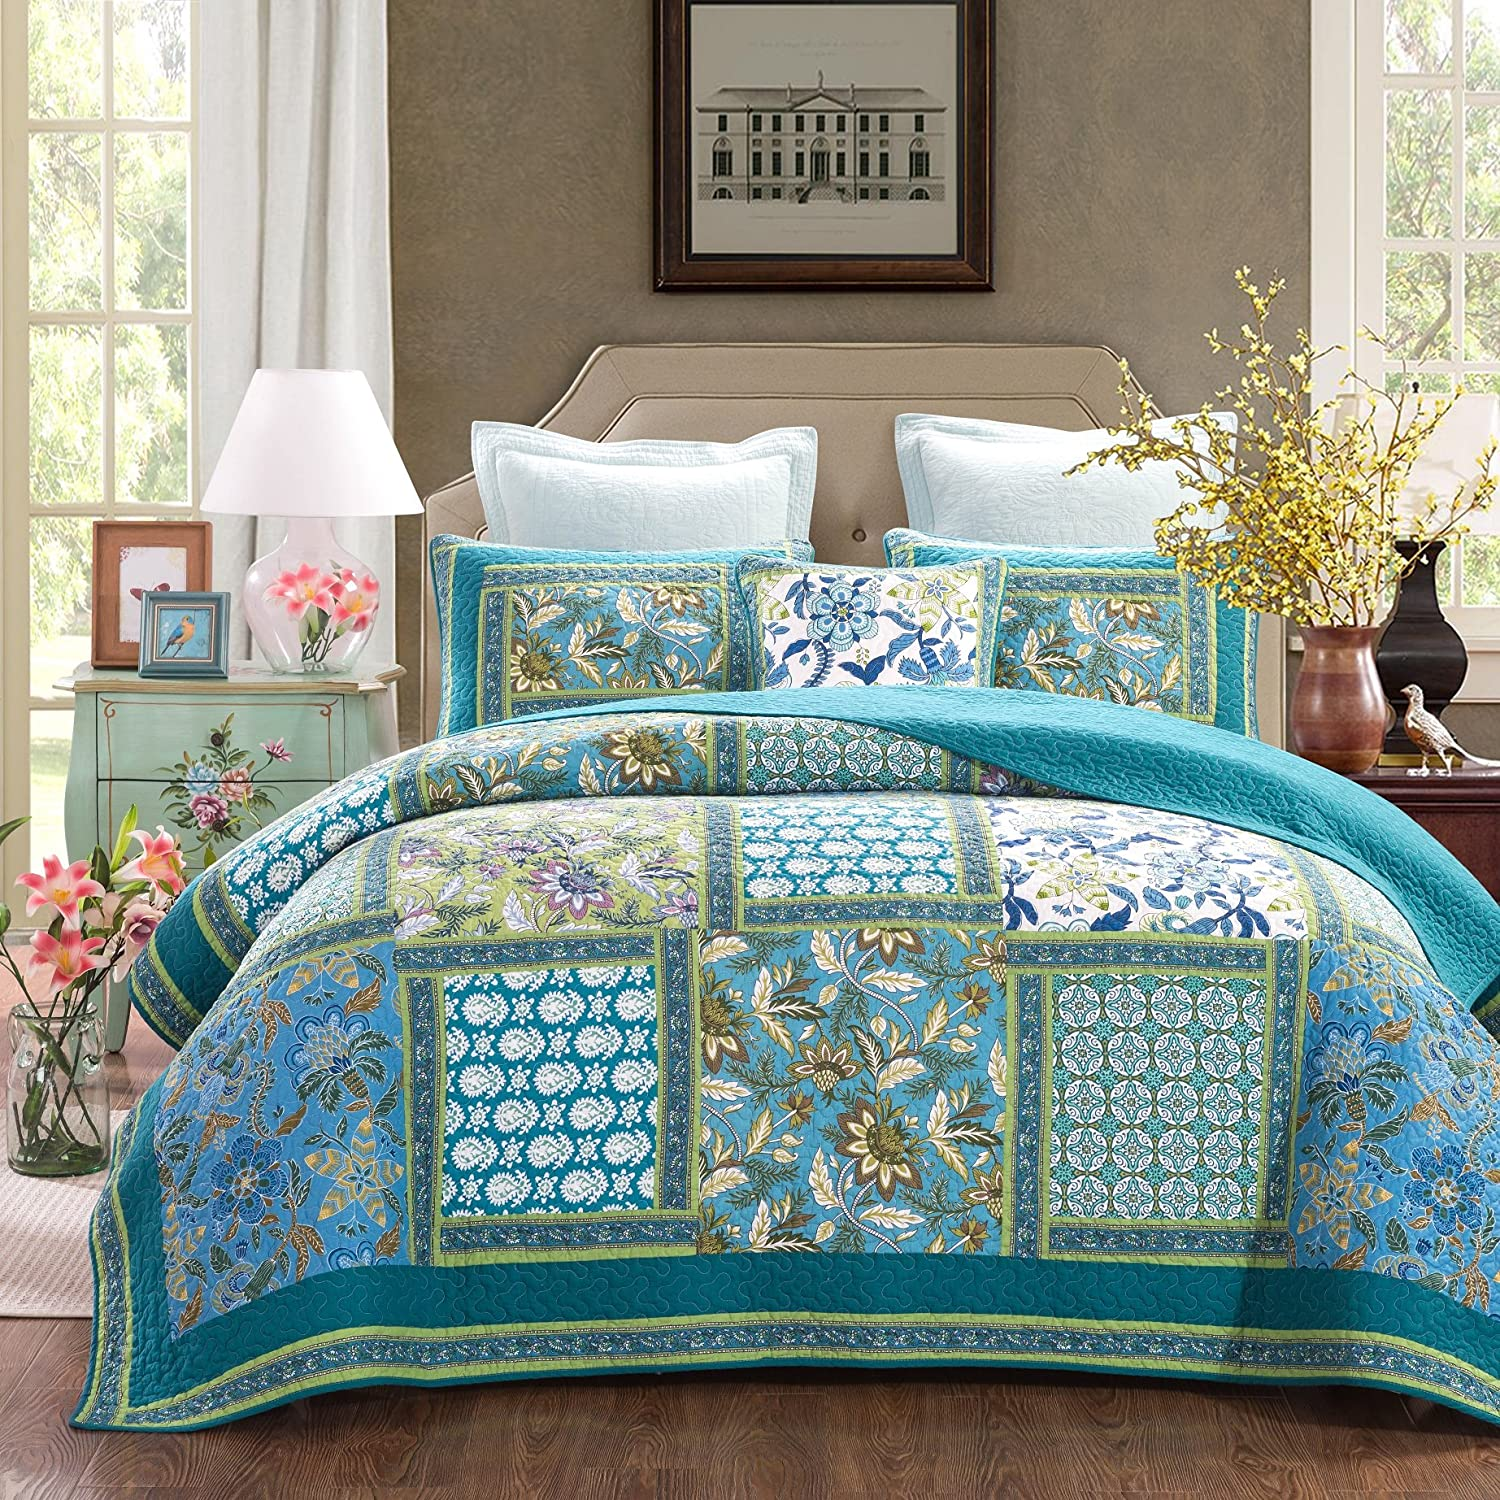 Amazon.com: DaDa Bedding Mediterranean Fountain Bohemian Reversible Cotton  Real Patchwork Quilted Coverlet Bedspread Set - Bright Vibrant Floral  Paisley ...